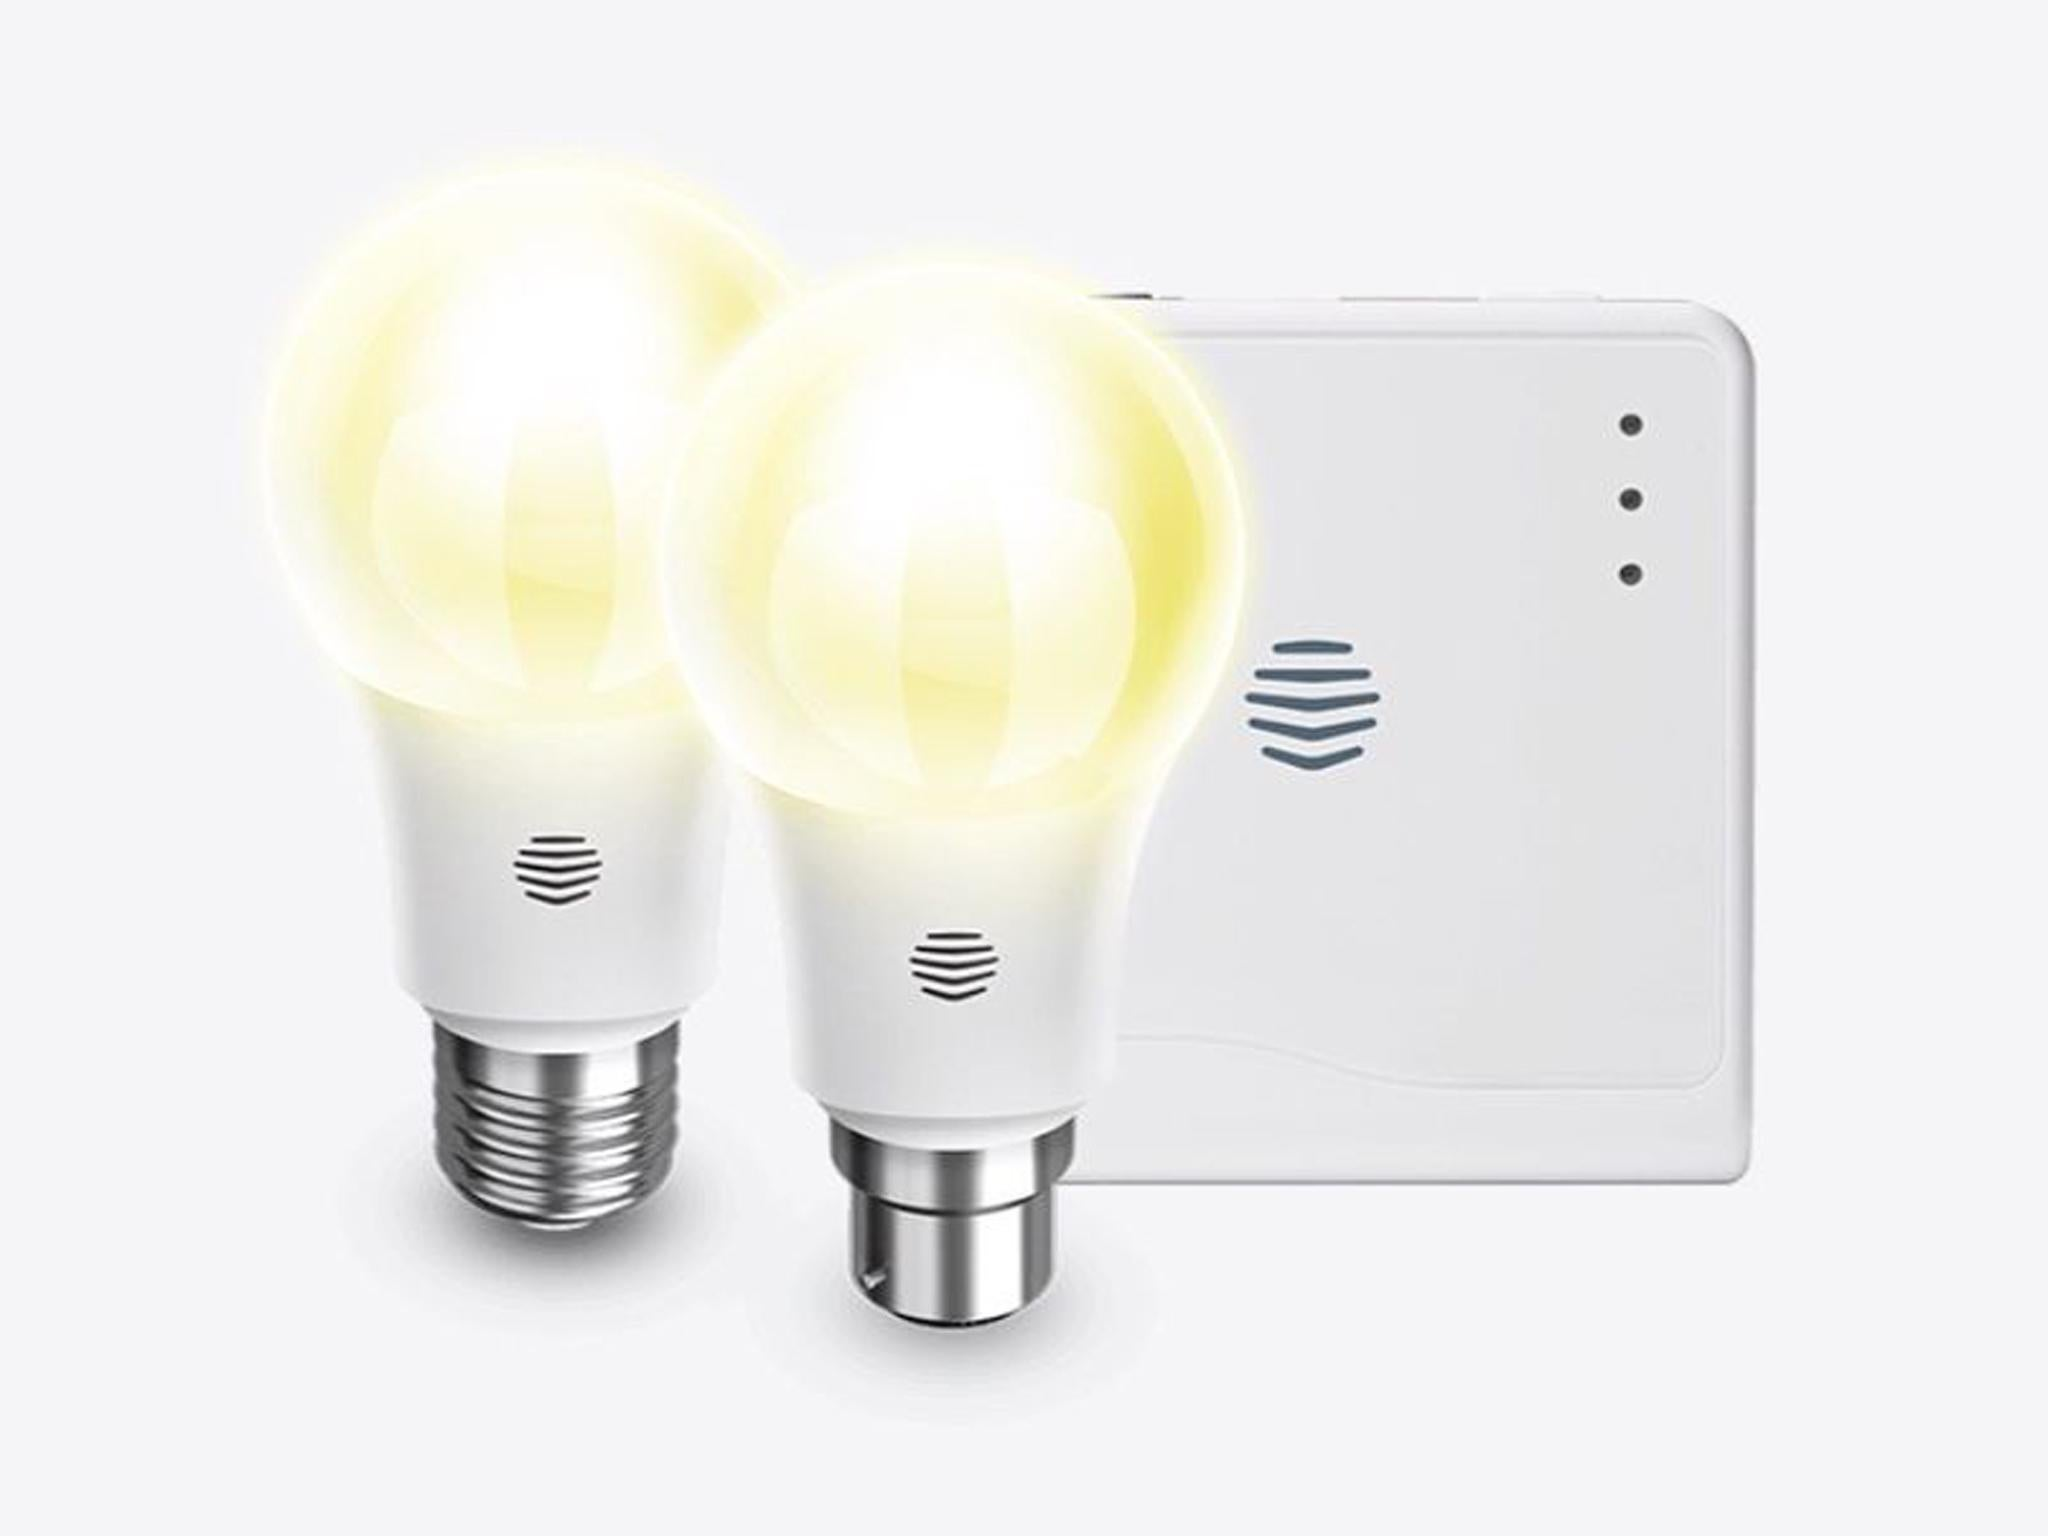 10 Best Smart Lighting The Independent Besides Incandescent Light Bulbs On Bulb Diagram Hive Active Starter Kit 100 Amazon